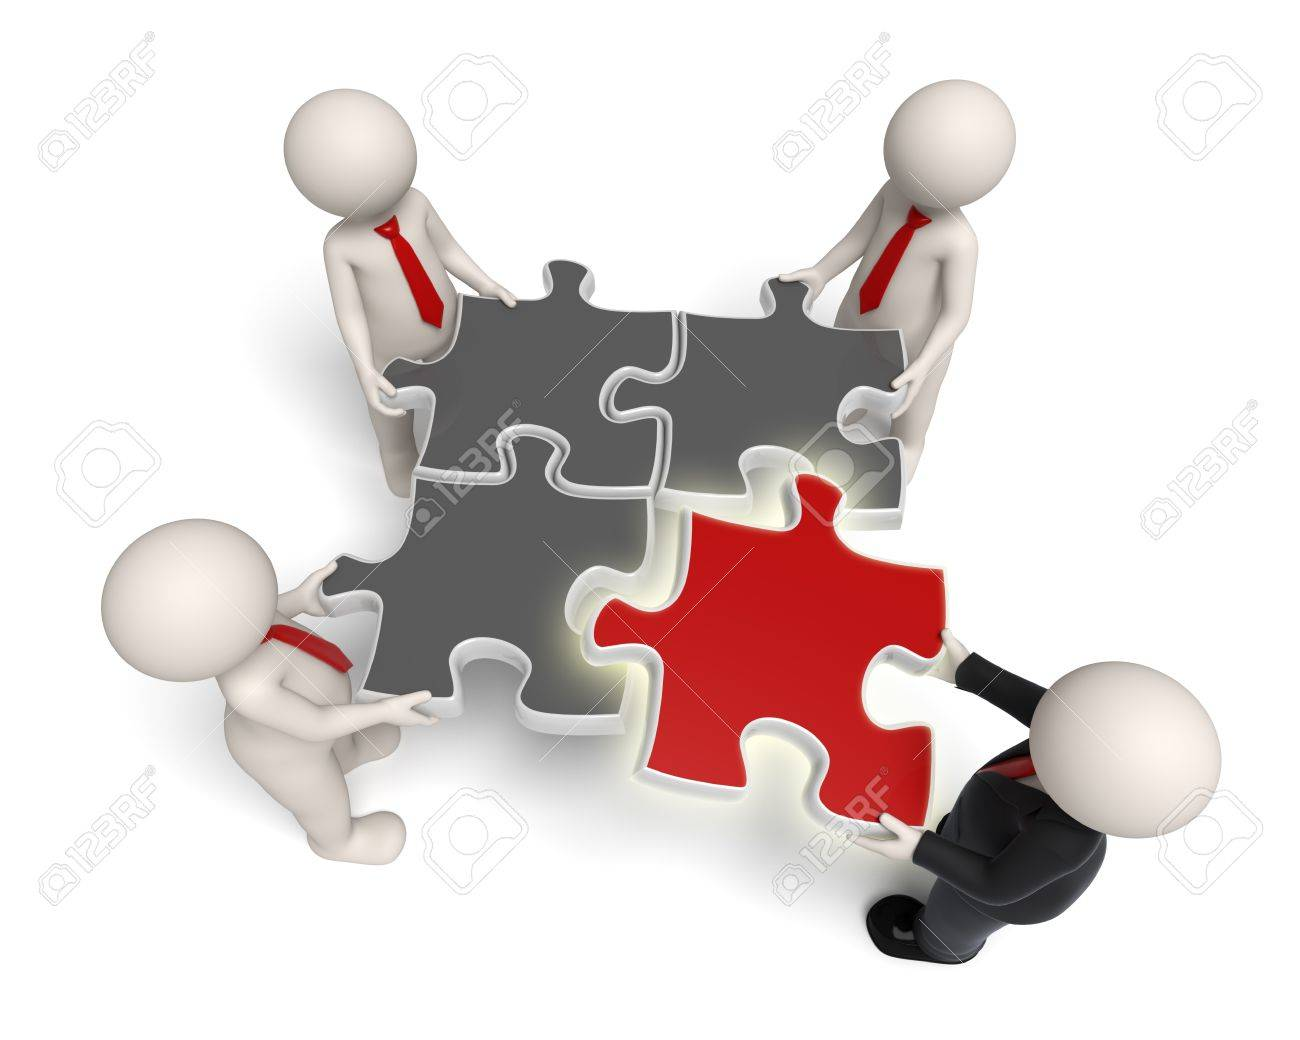 3d rendered white business people assembling puzzle pieces, the red one is glowing. Stock Photo - 11688325